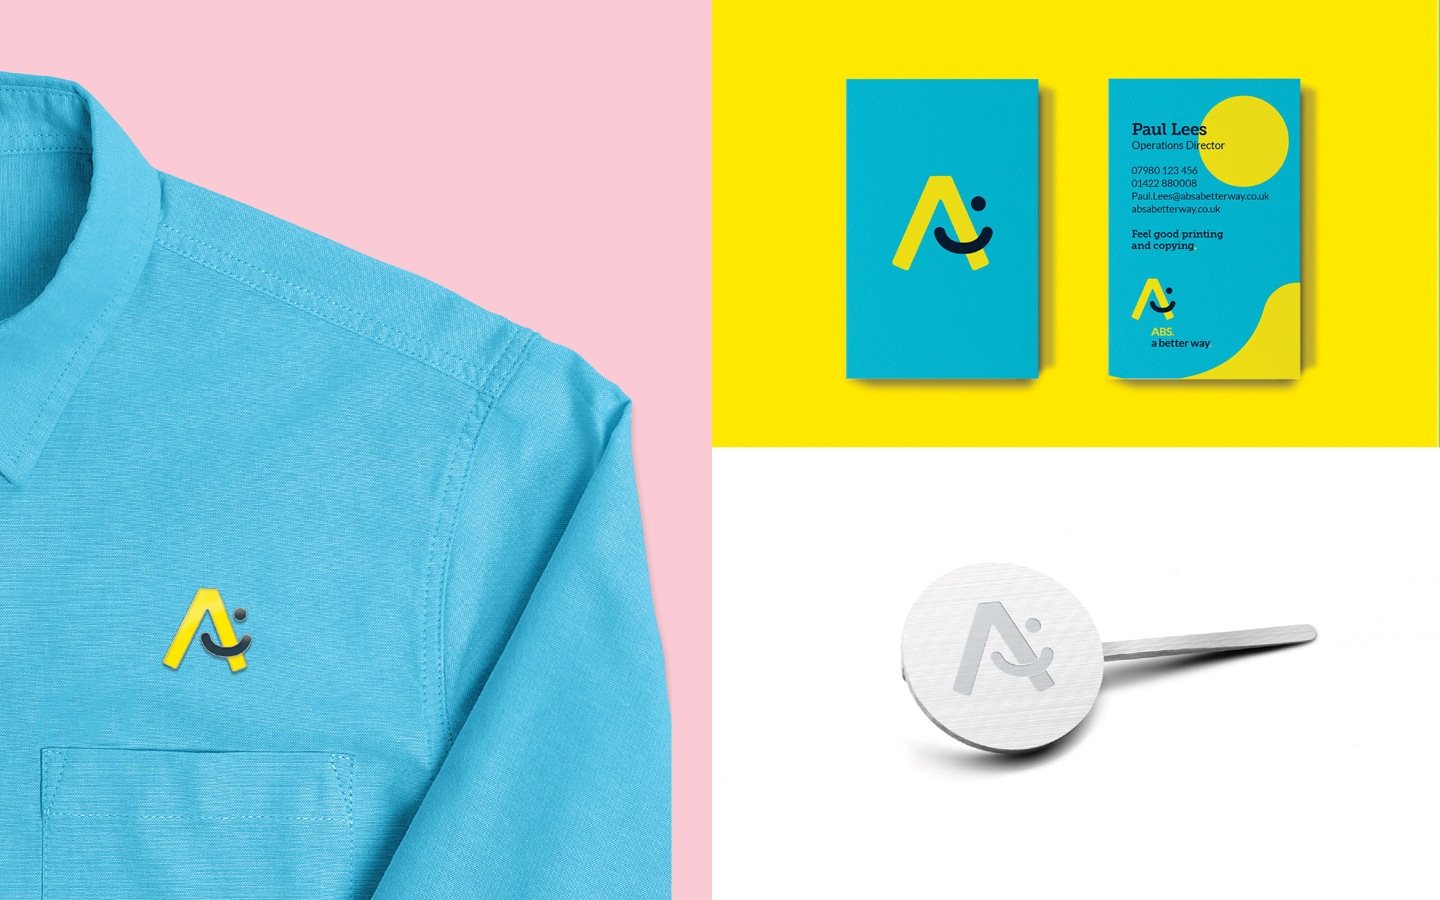 ABS Stationery